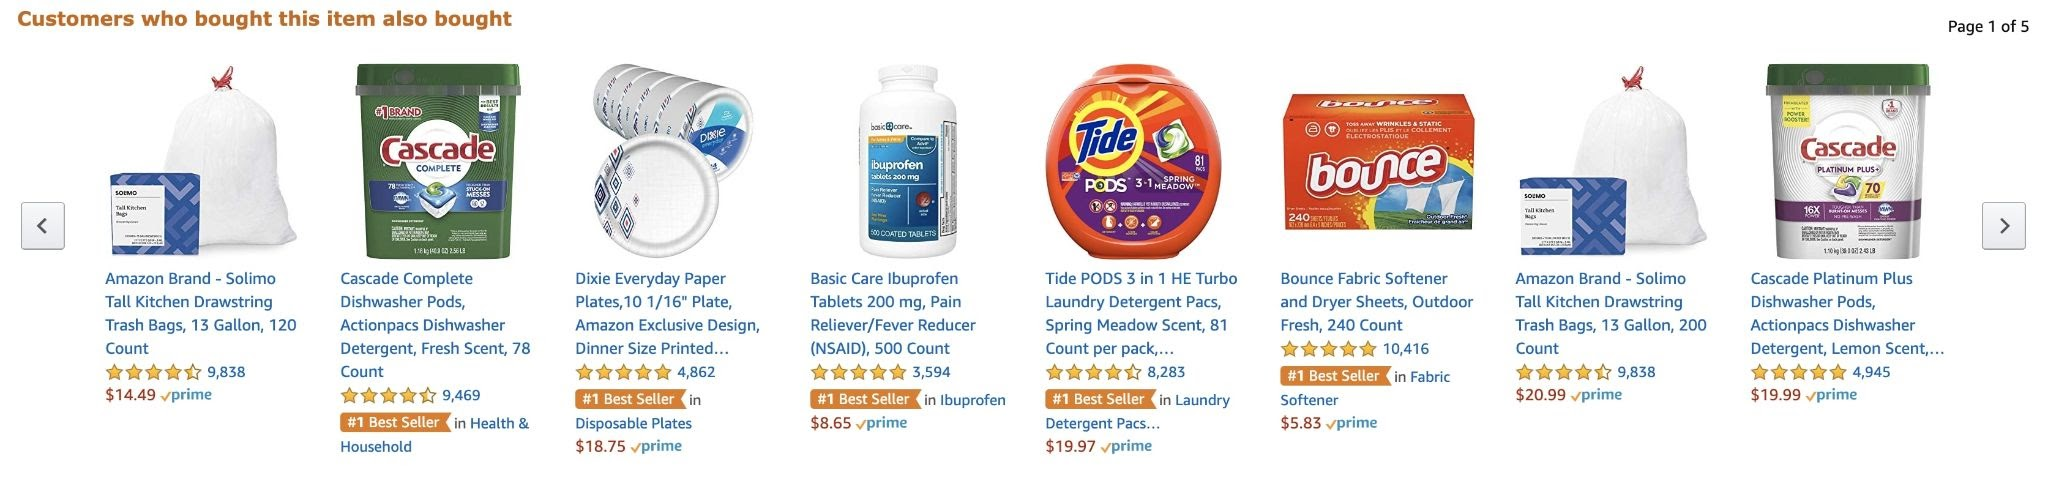 Example of cross-selling through carousel banners by Amazon